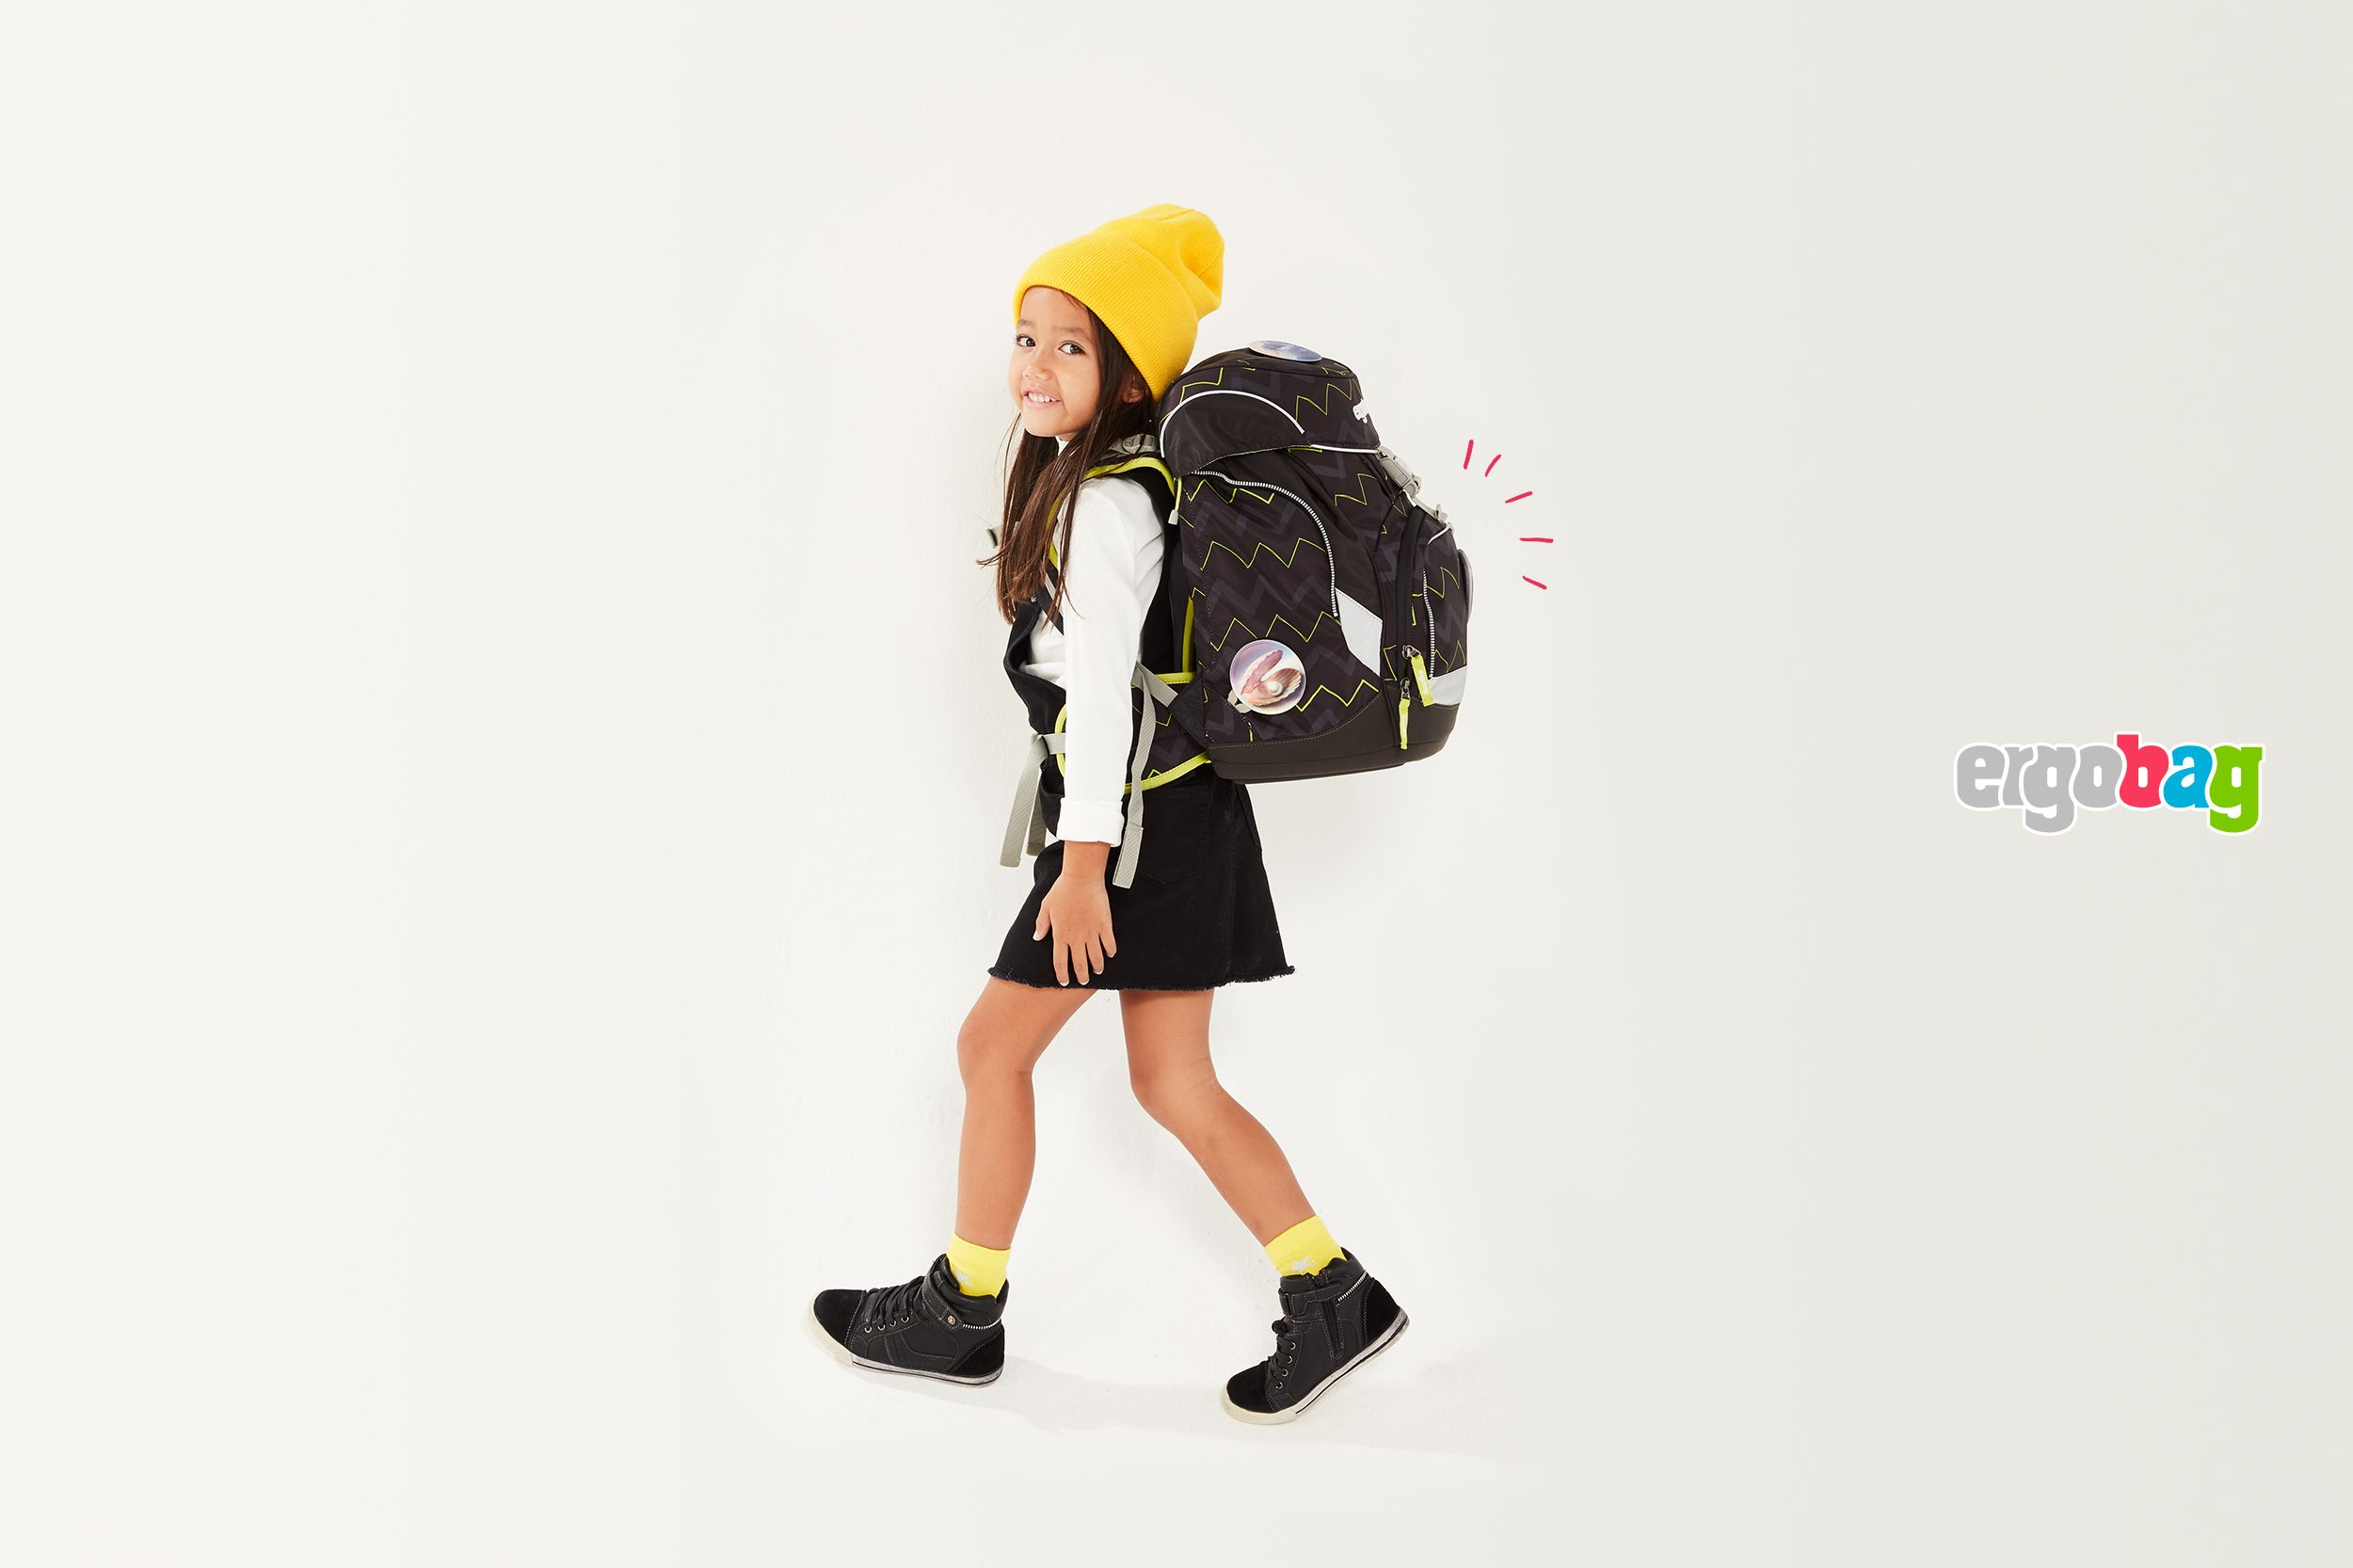 ergobag-girl-black-backpack